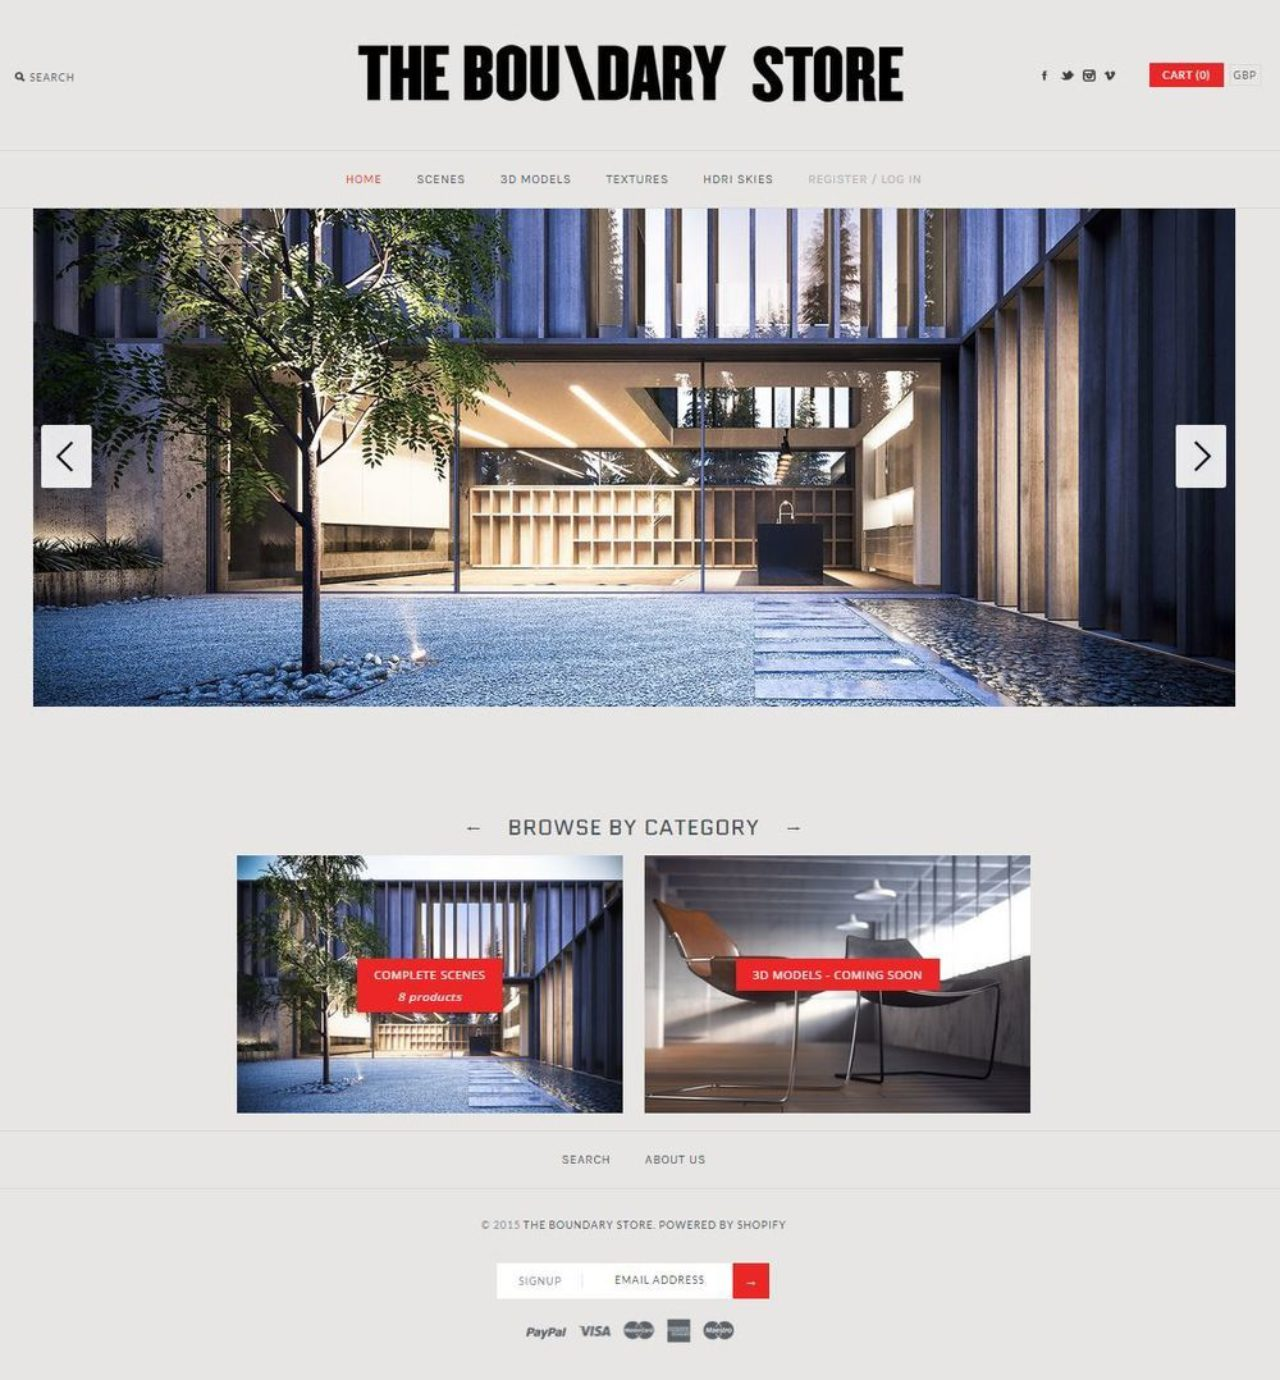 The Boundary Store